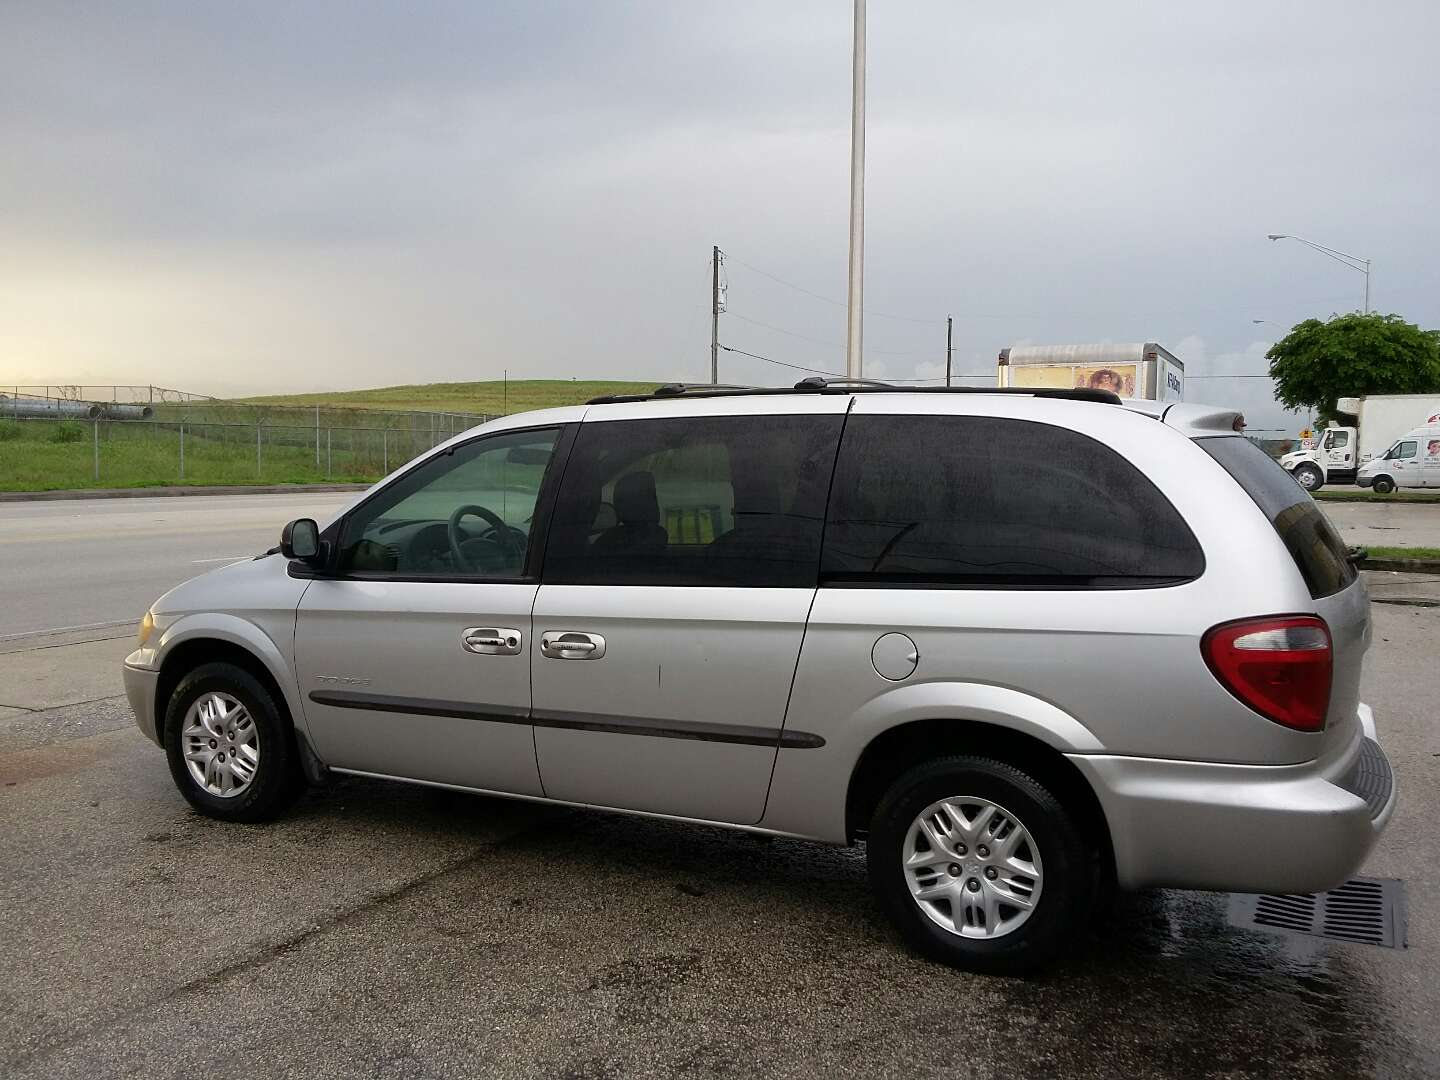 dodge grand caravan for sale in miami fl 5miles buy and sell. Black Bedroom Furniture Sets. Home Design Ideas